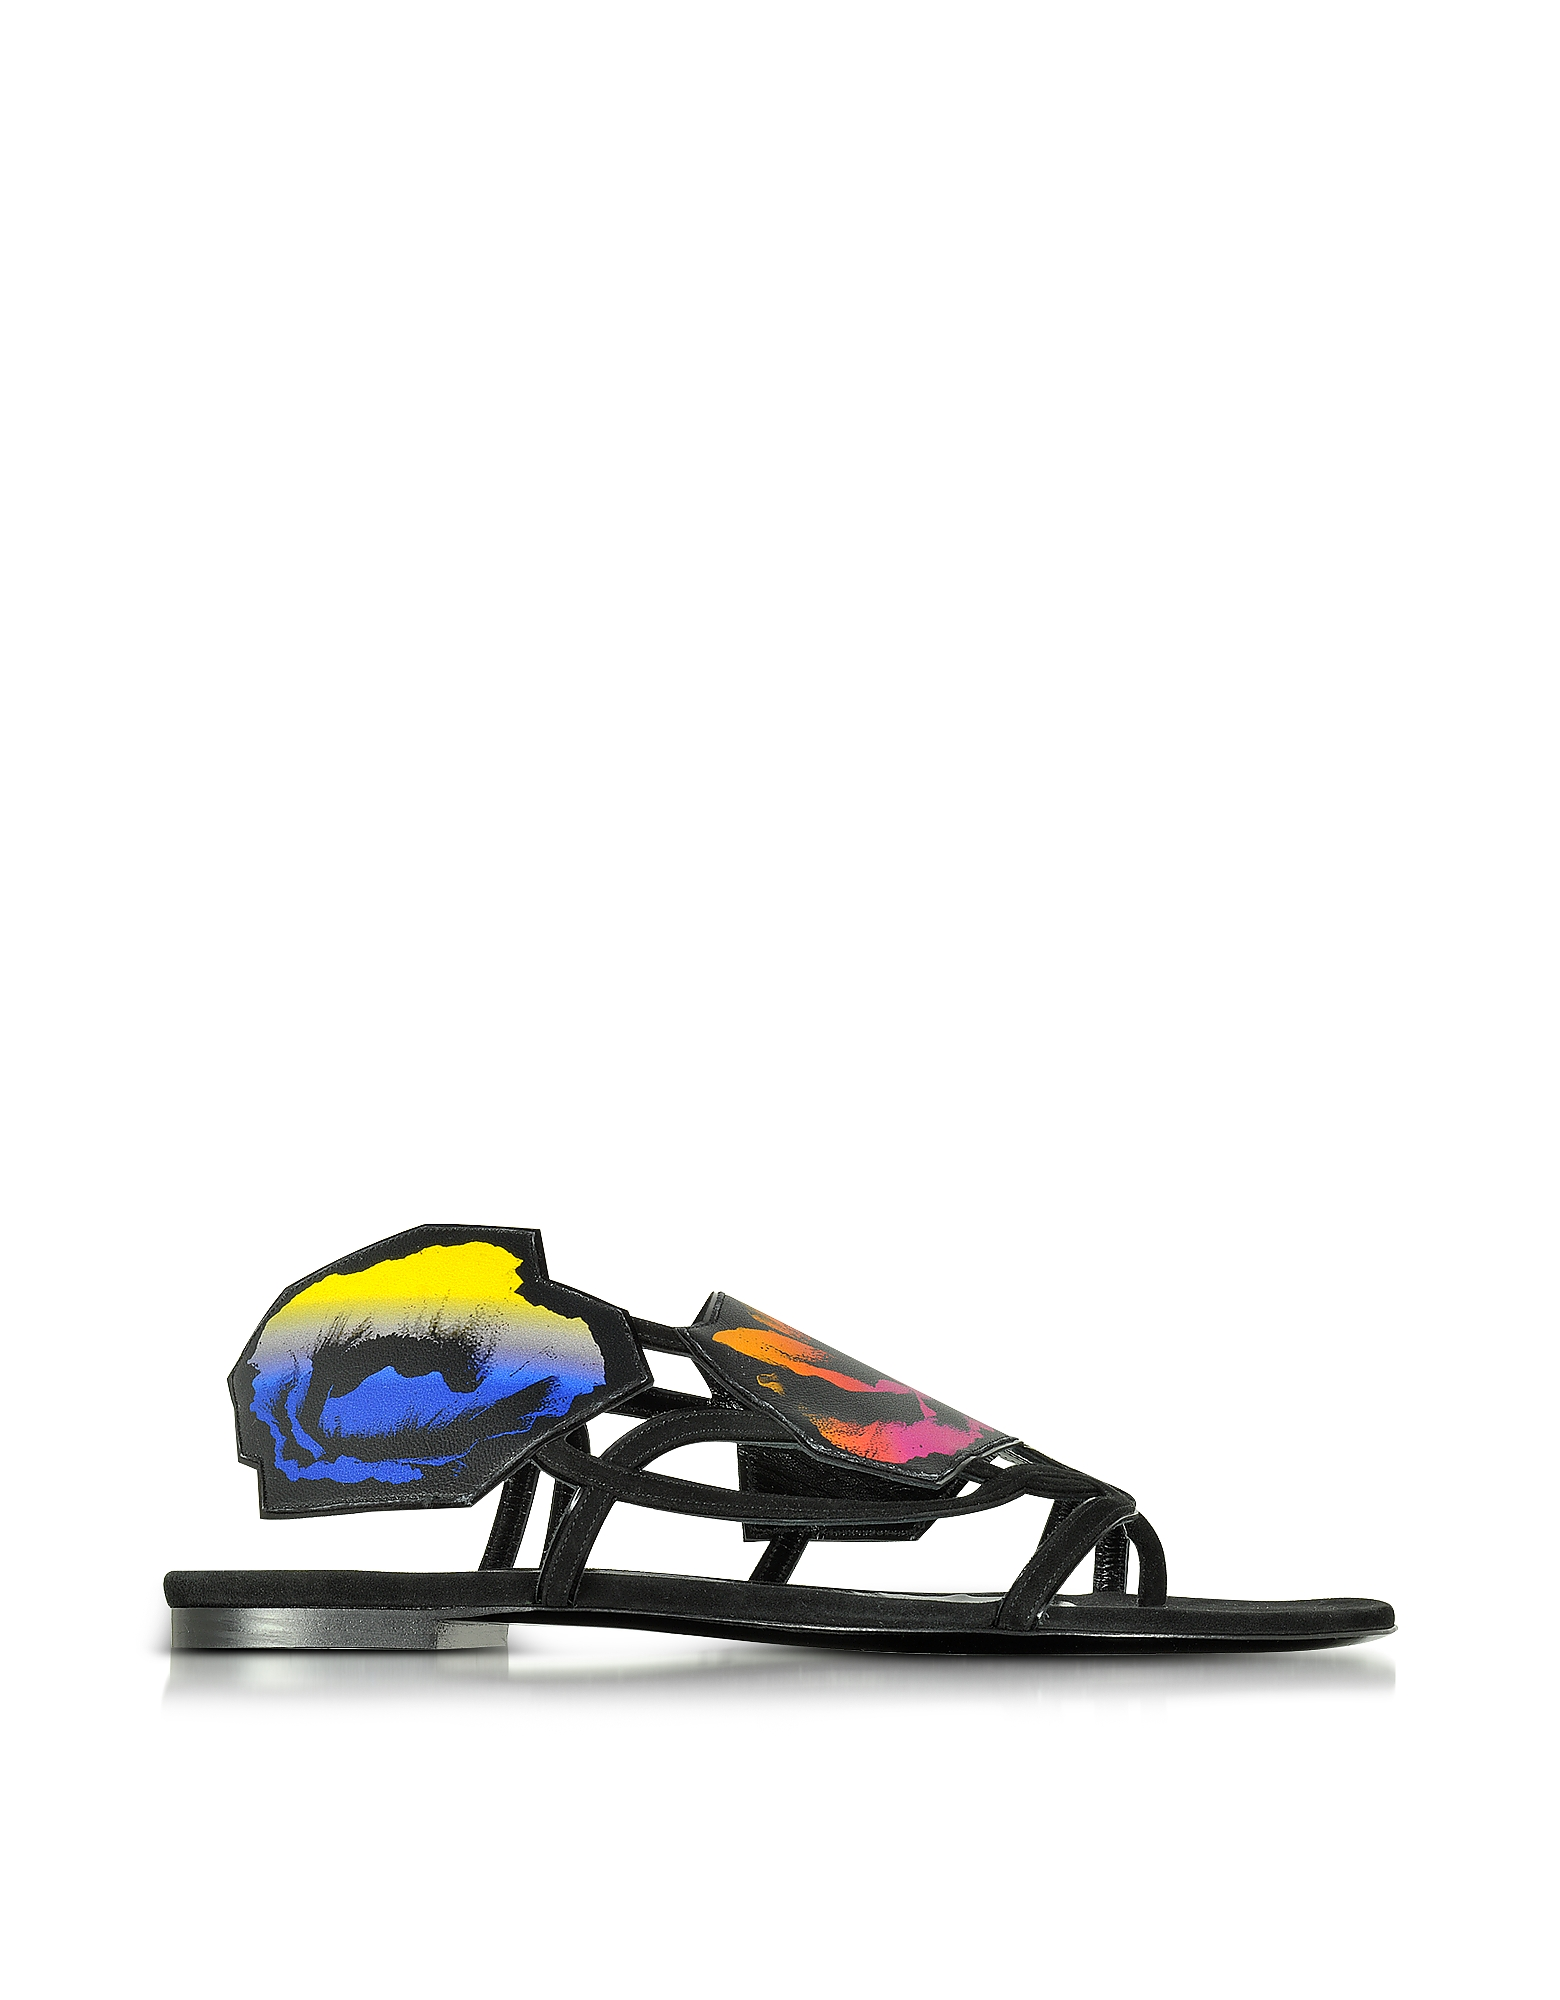 Pierre Hardy Shoes, Multicolor Leather and Suede Poppy Flat Sandals